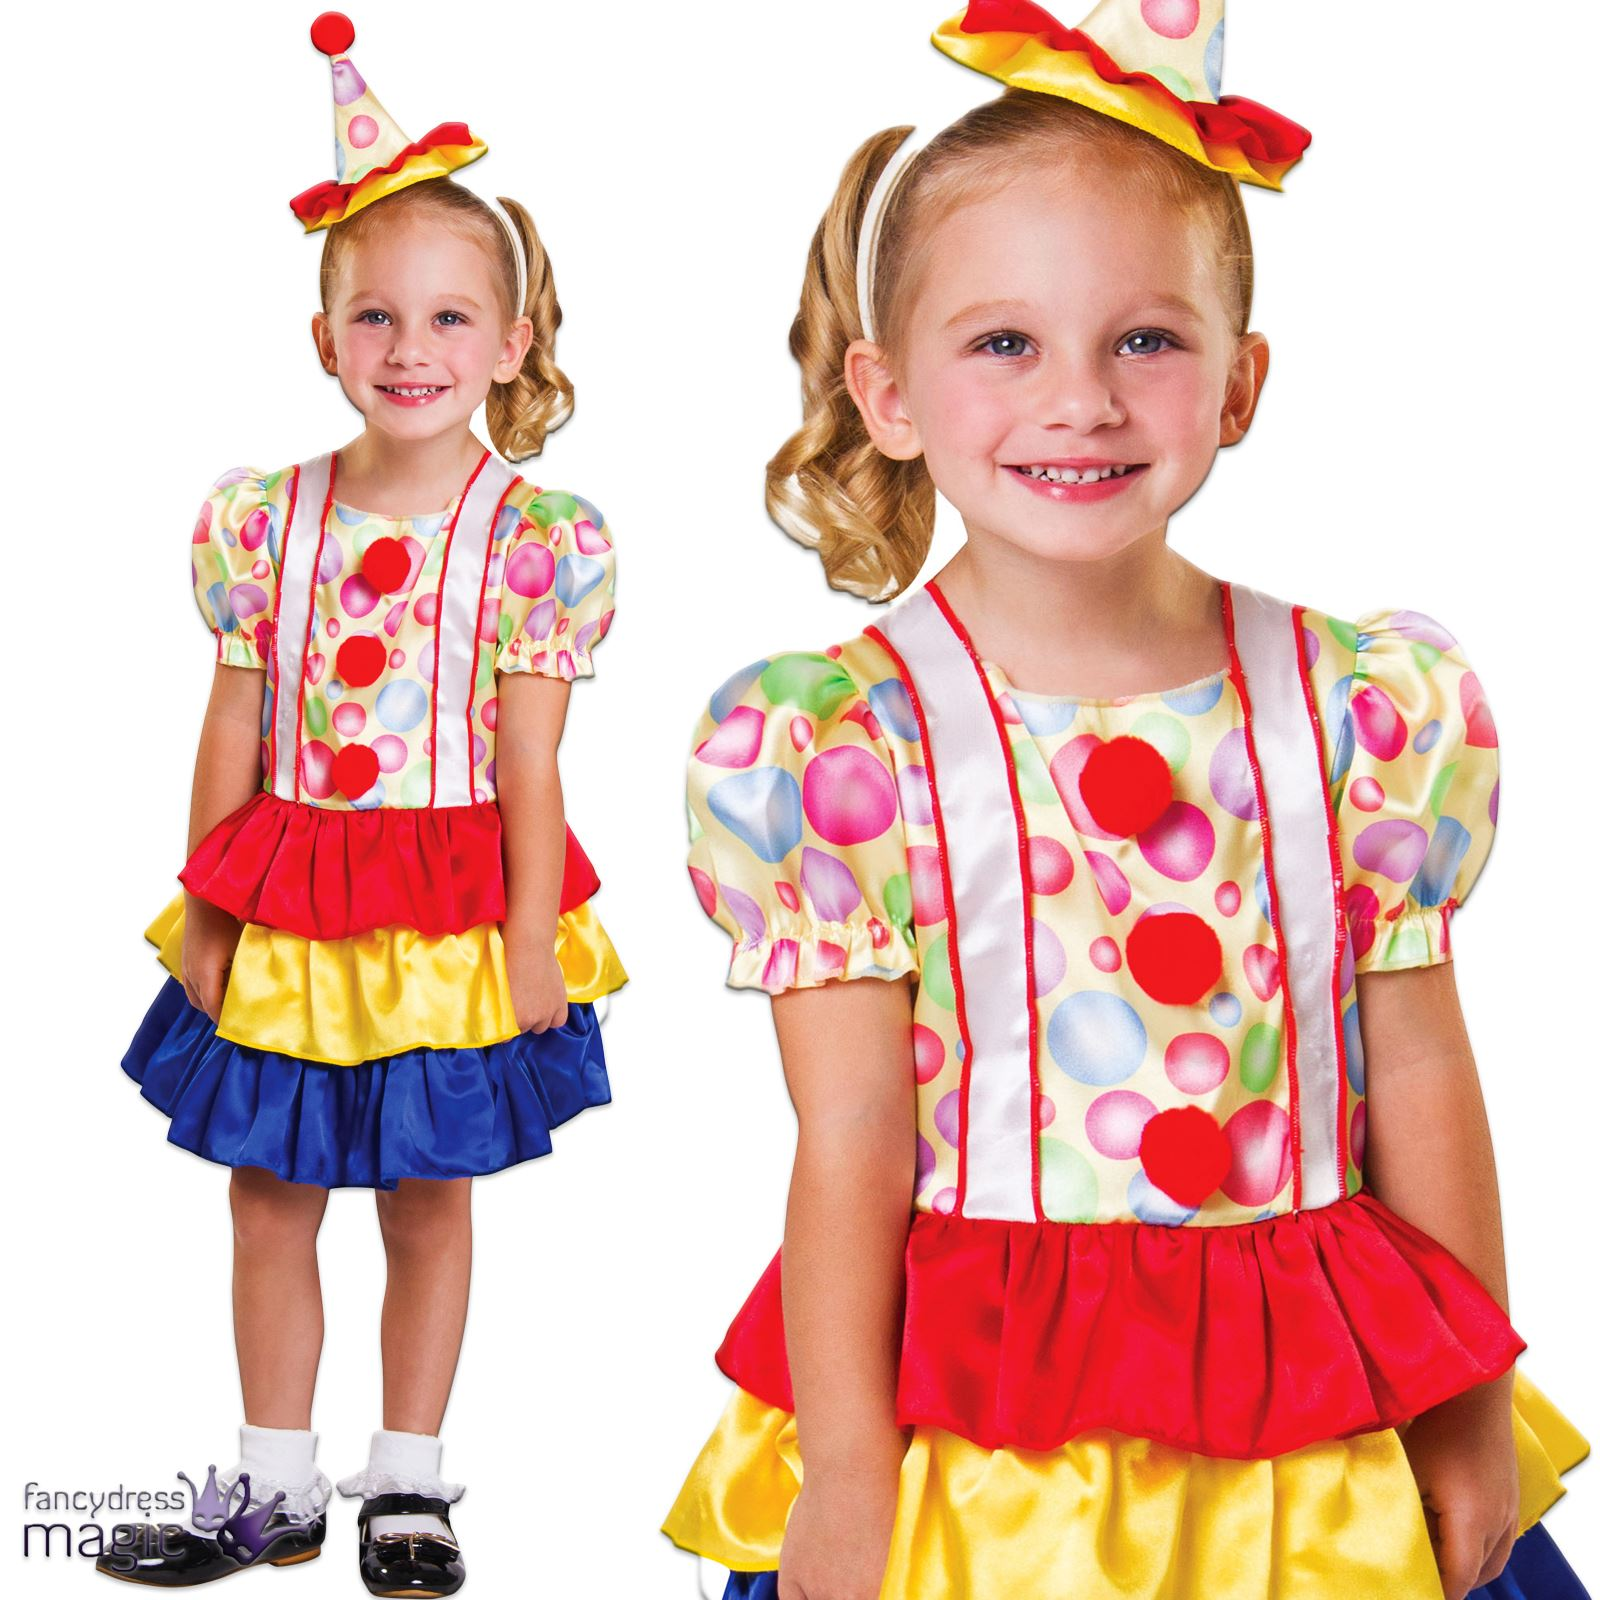 Girls Toddler Halloween Circus Clown Fancy Dress Clown Costume Outfit Age 2 - 3  sc 1 st  eBay & Girls Toddler Halloween Circus Clown Fancy Dress Clown Costume ...